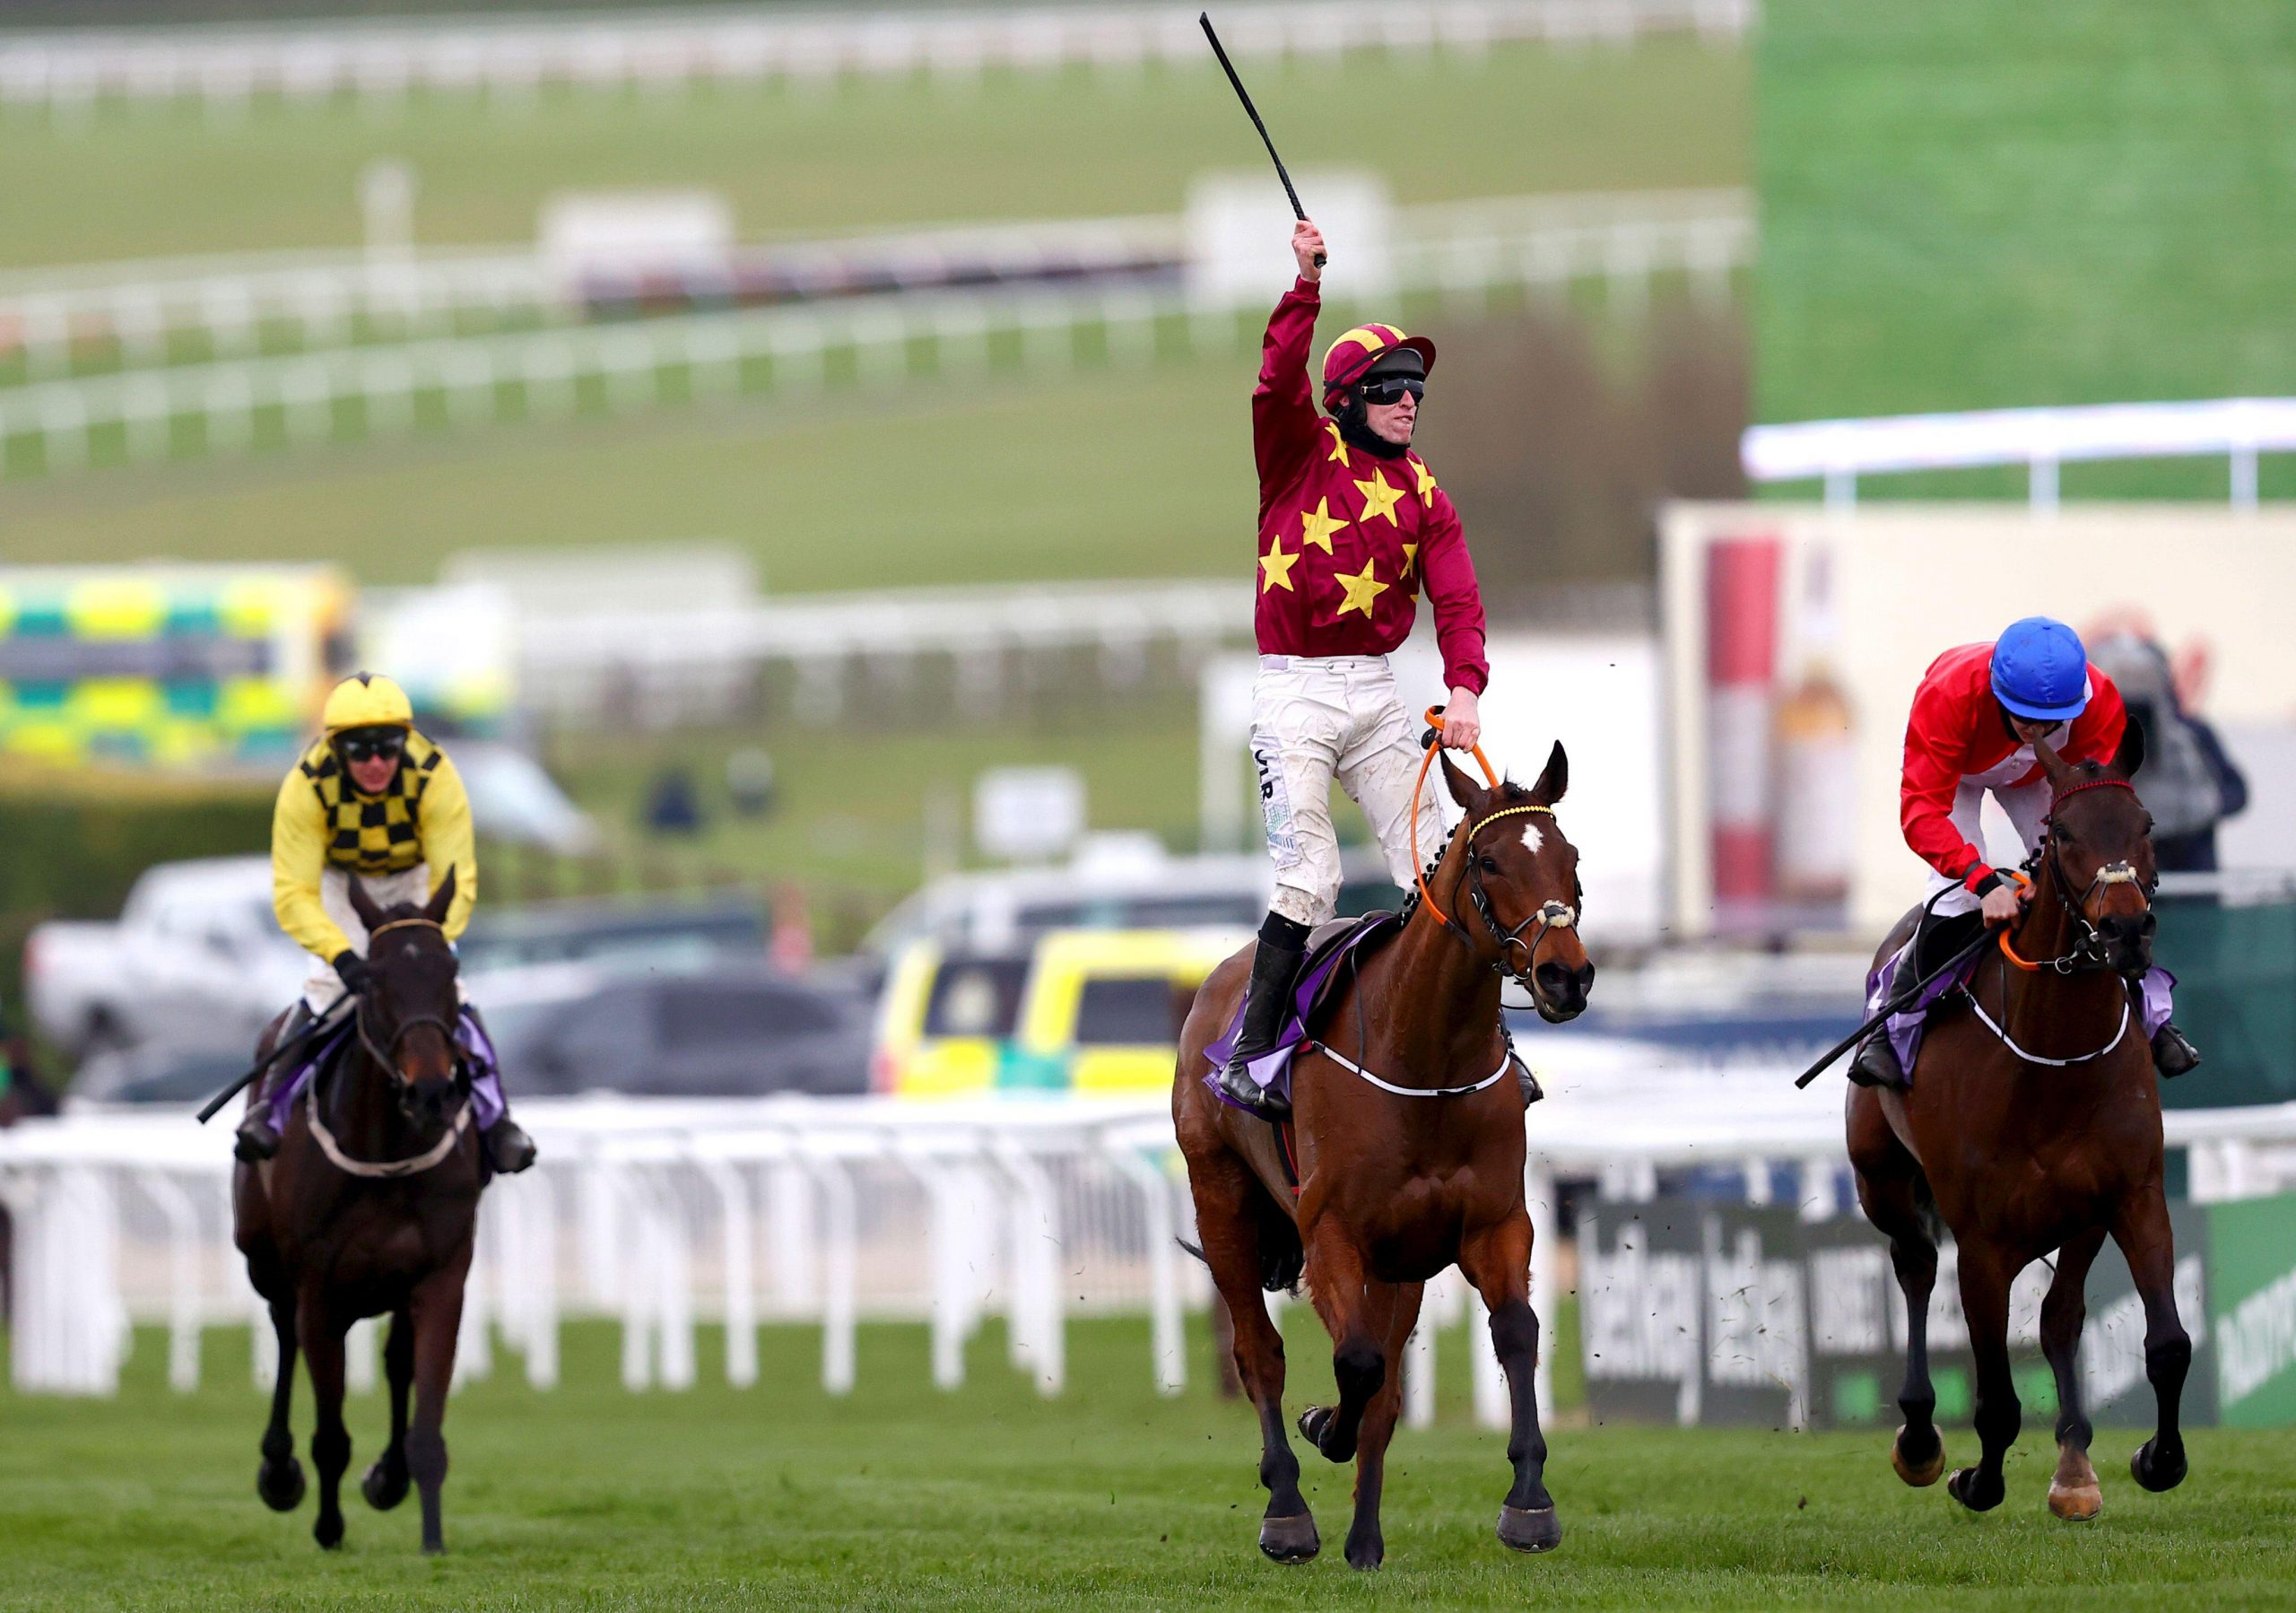 Jack Kennedy (second right) celebrates on top of Minella Indo after winning the WellChild Cheltenham Gold Cup Chase during day four of the Cheltenham Festival at Cheltenham Racecourse. Picture date: Friday March 19, 2021.